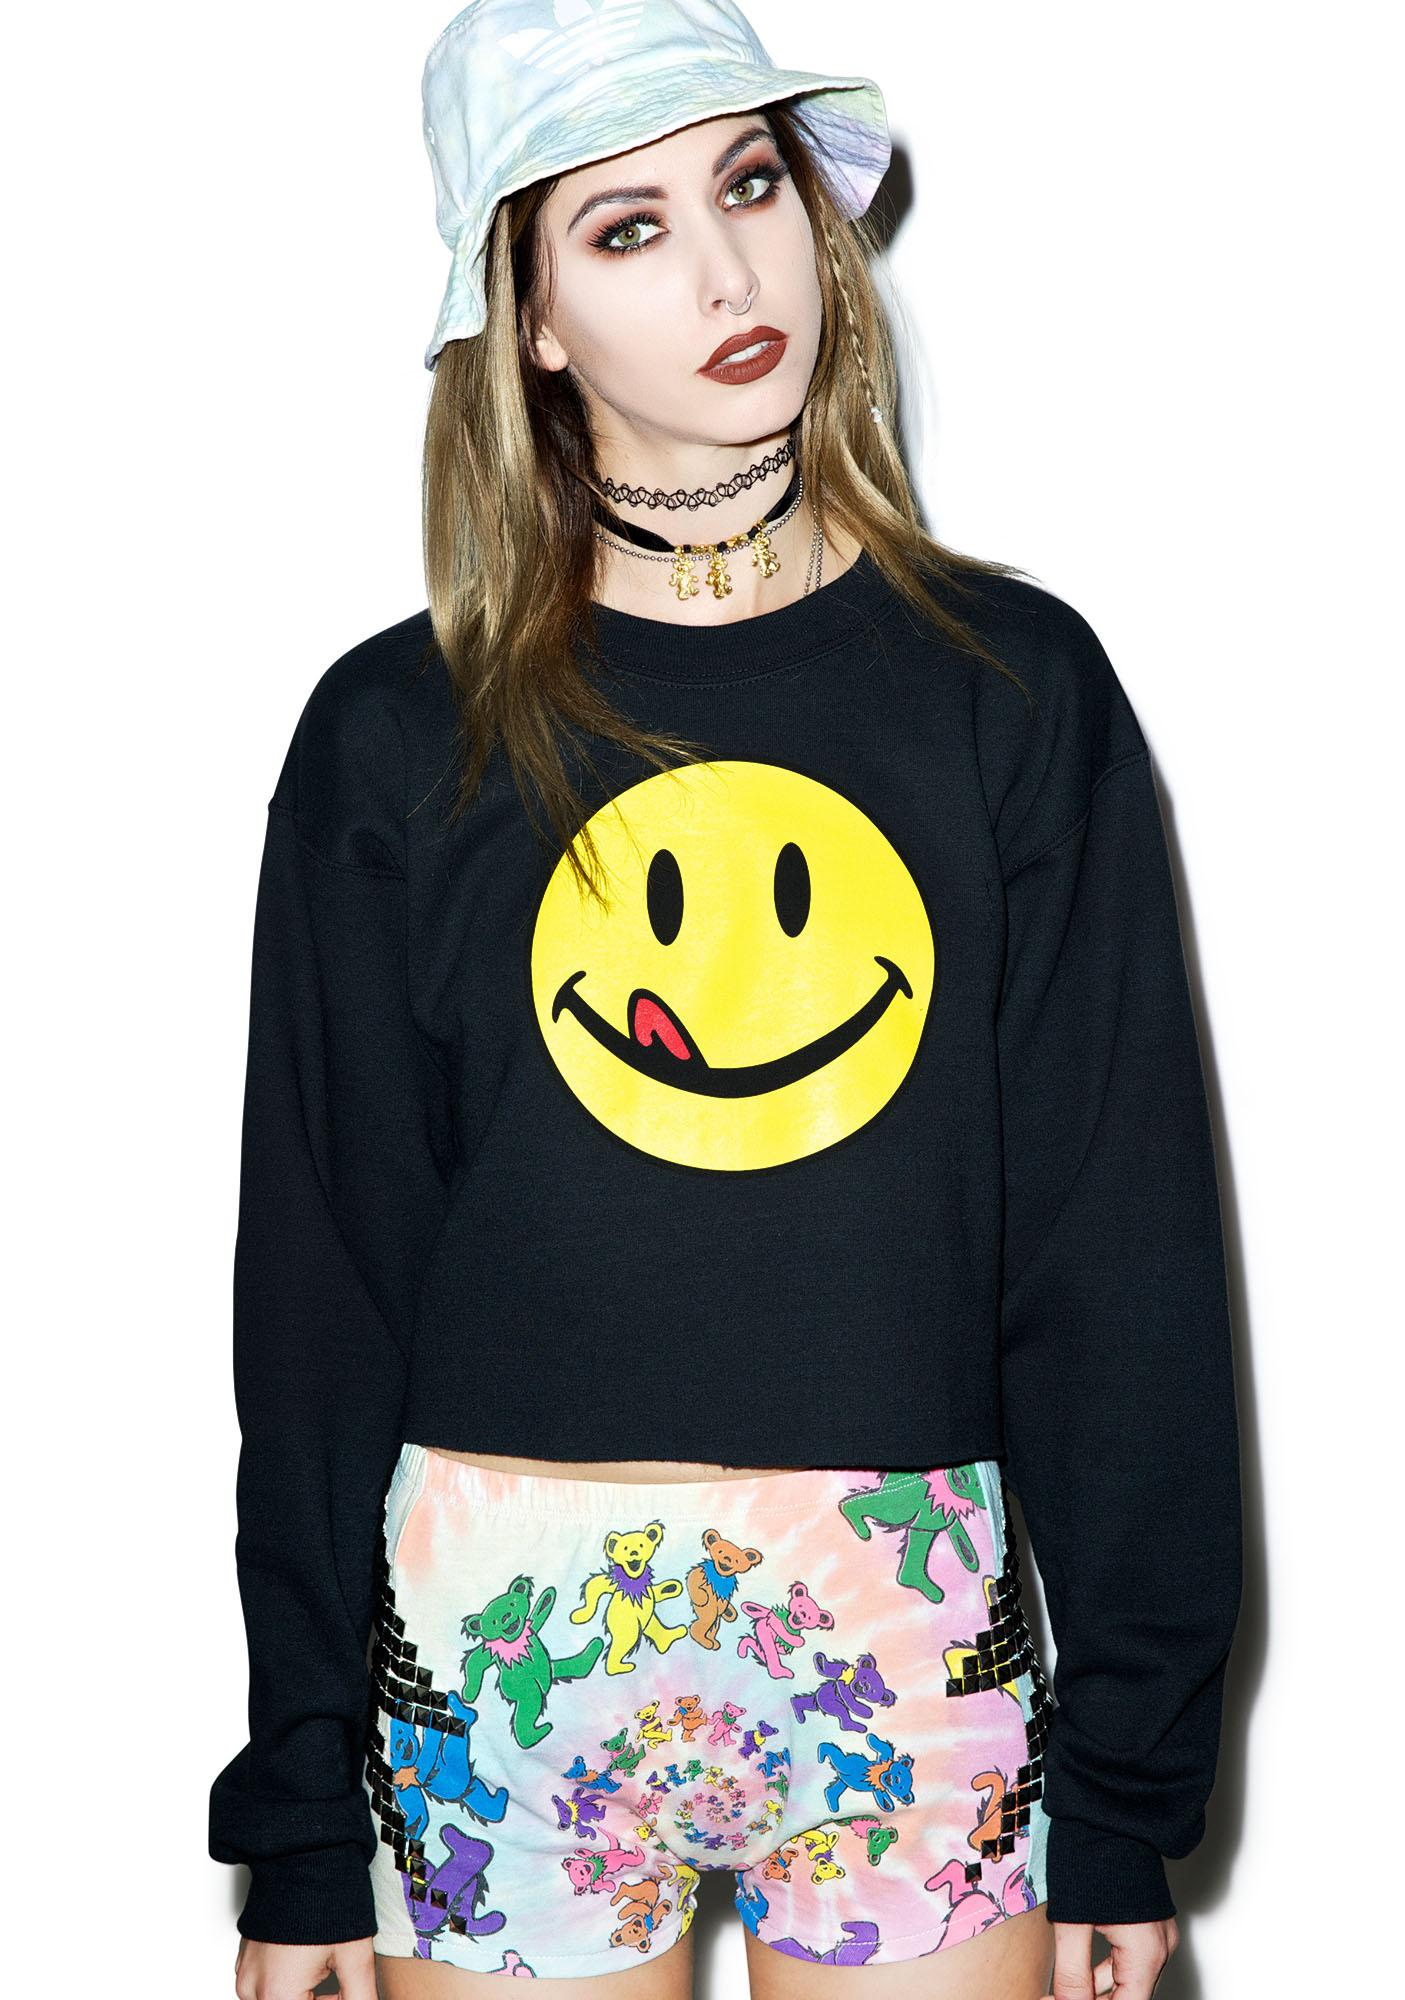 Petals and Peacocks Lickity Split Crop Sweatshirt